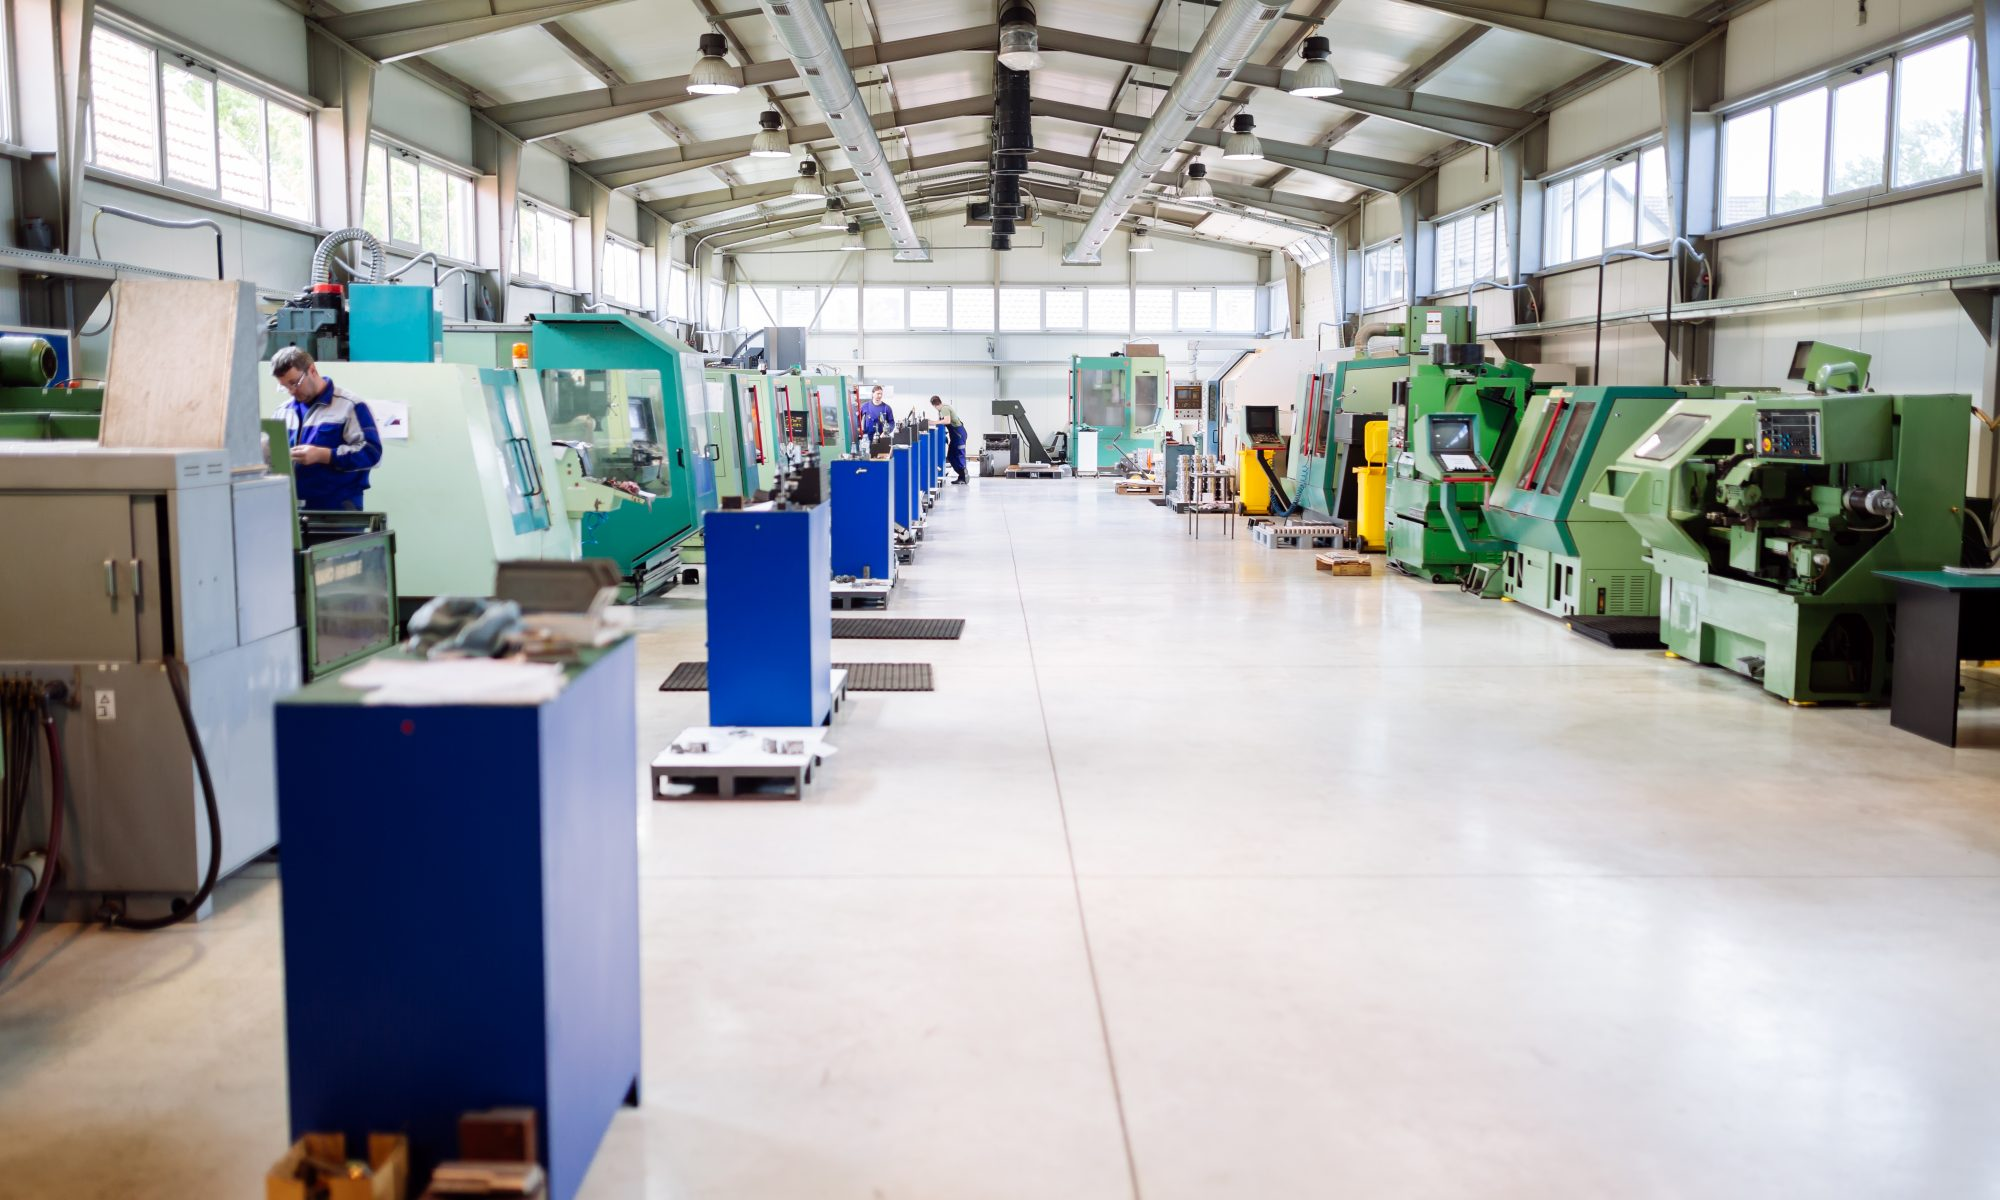 Looking down a factory aisle lined with CNC machines on both sides